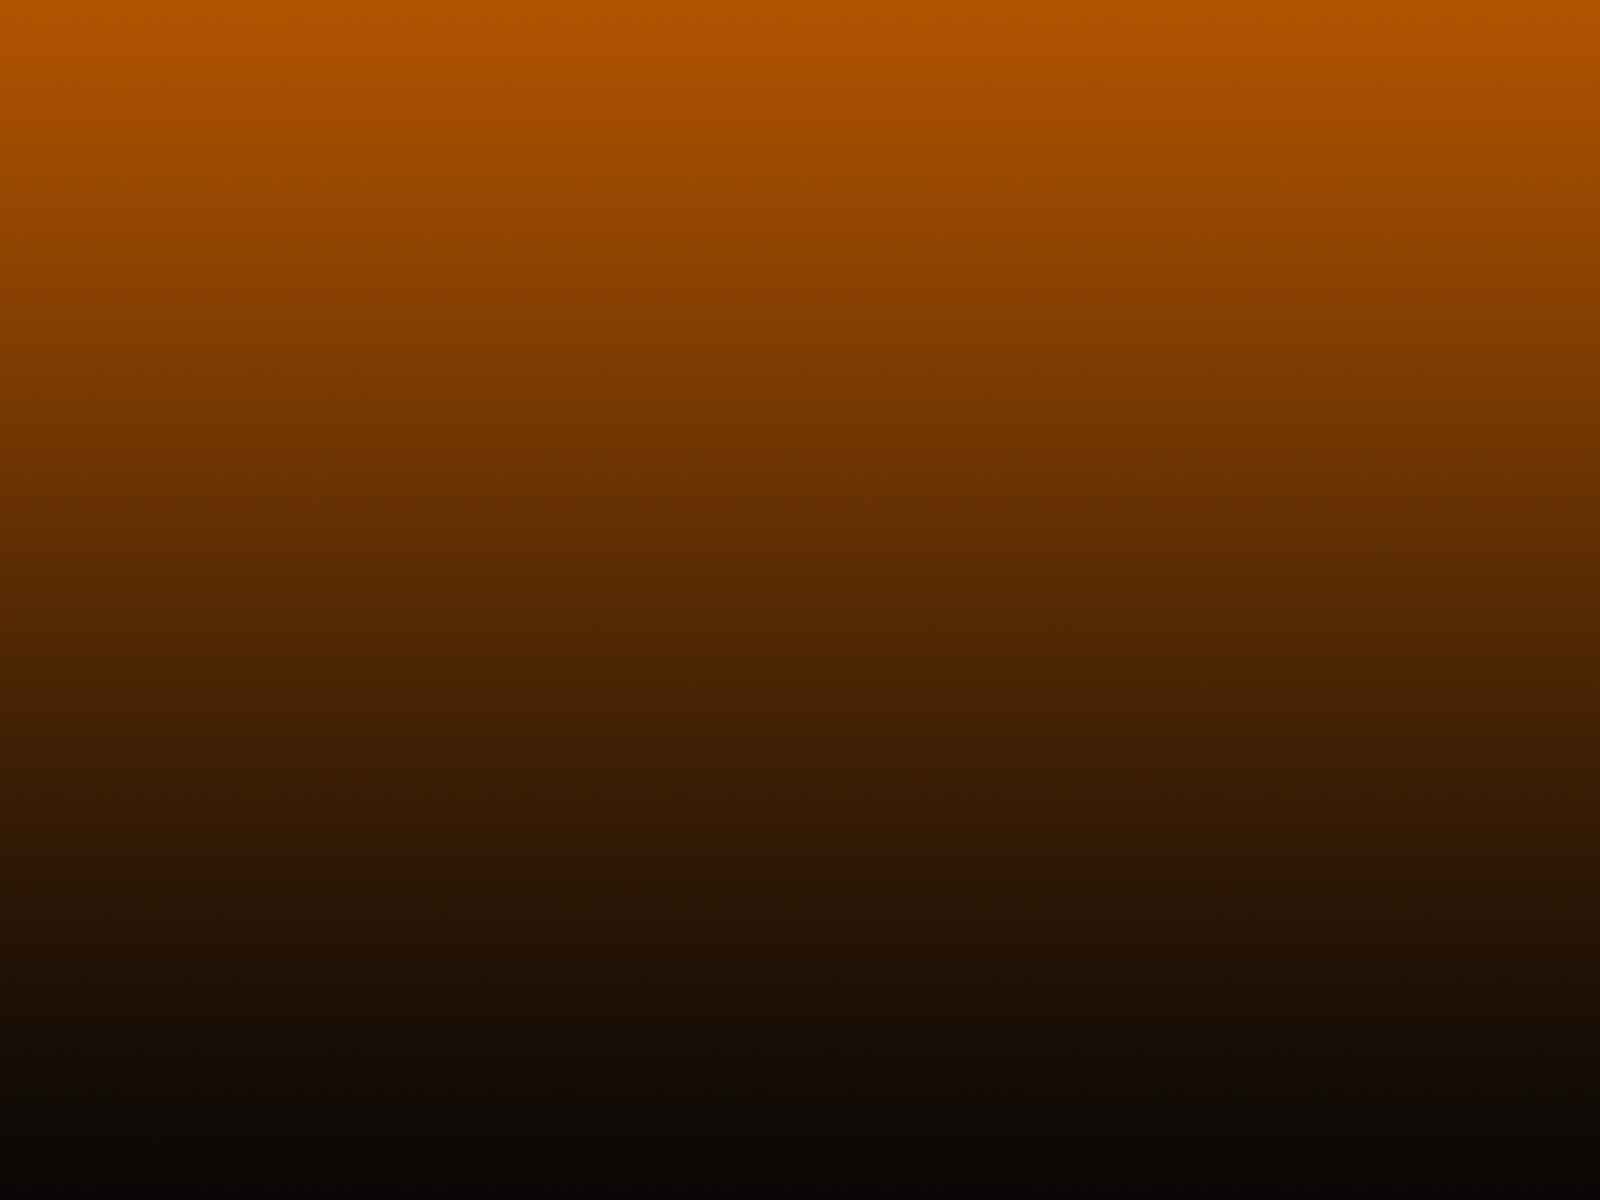 Desktop black and orange background download 1600x1200